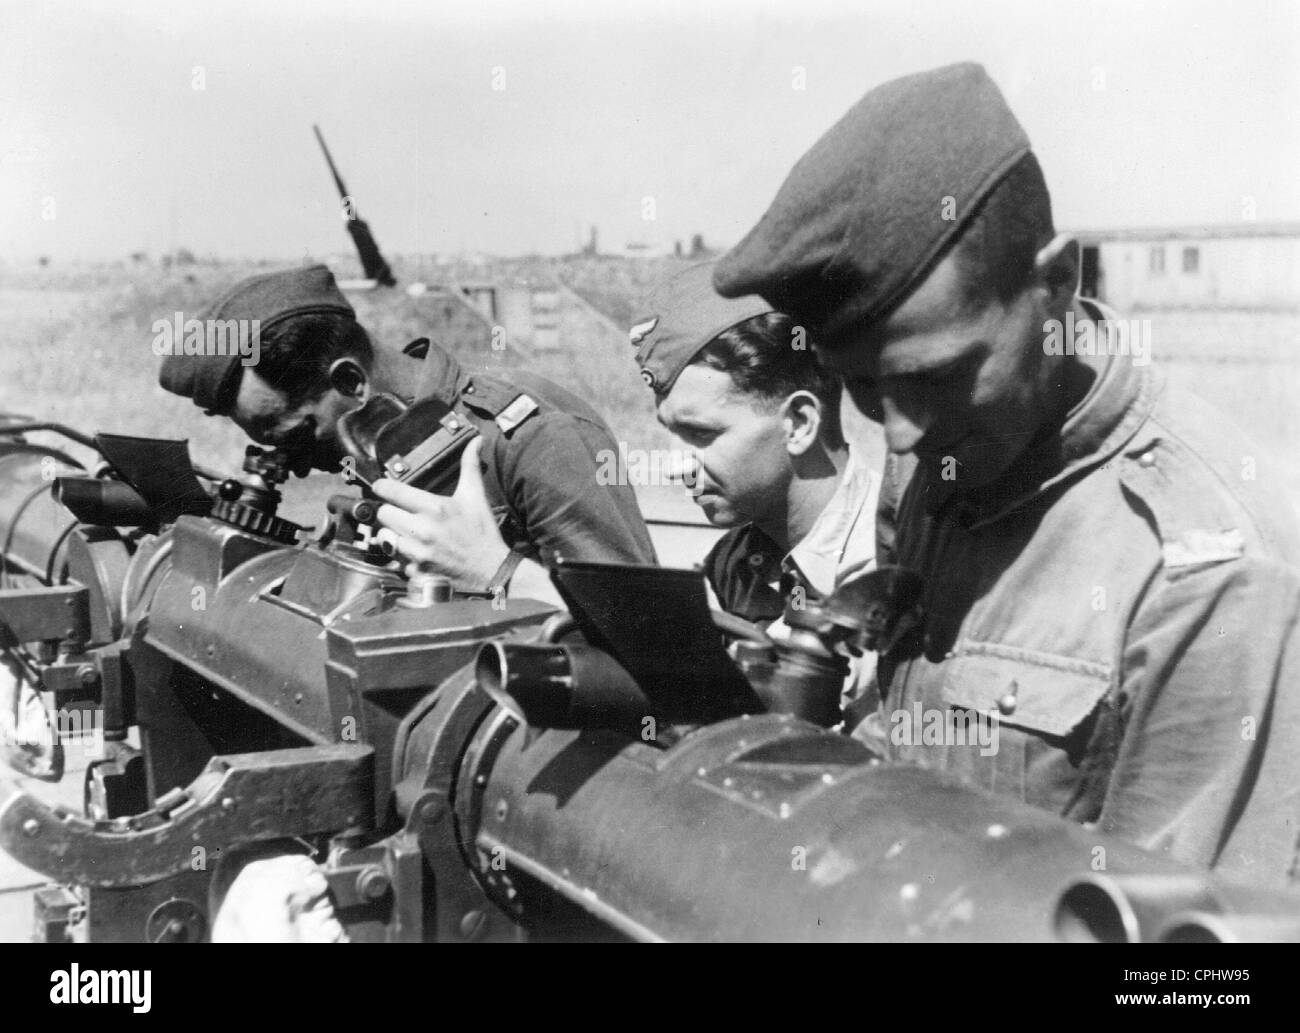 Soldiers at the rangefinder of a Flak battery, 1942 - Stock Image